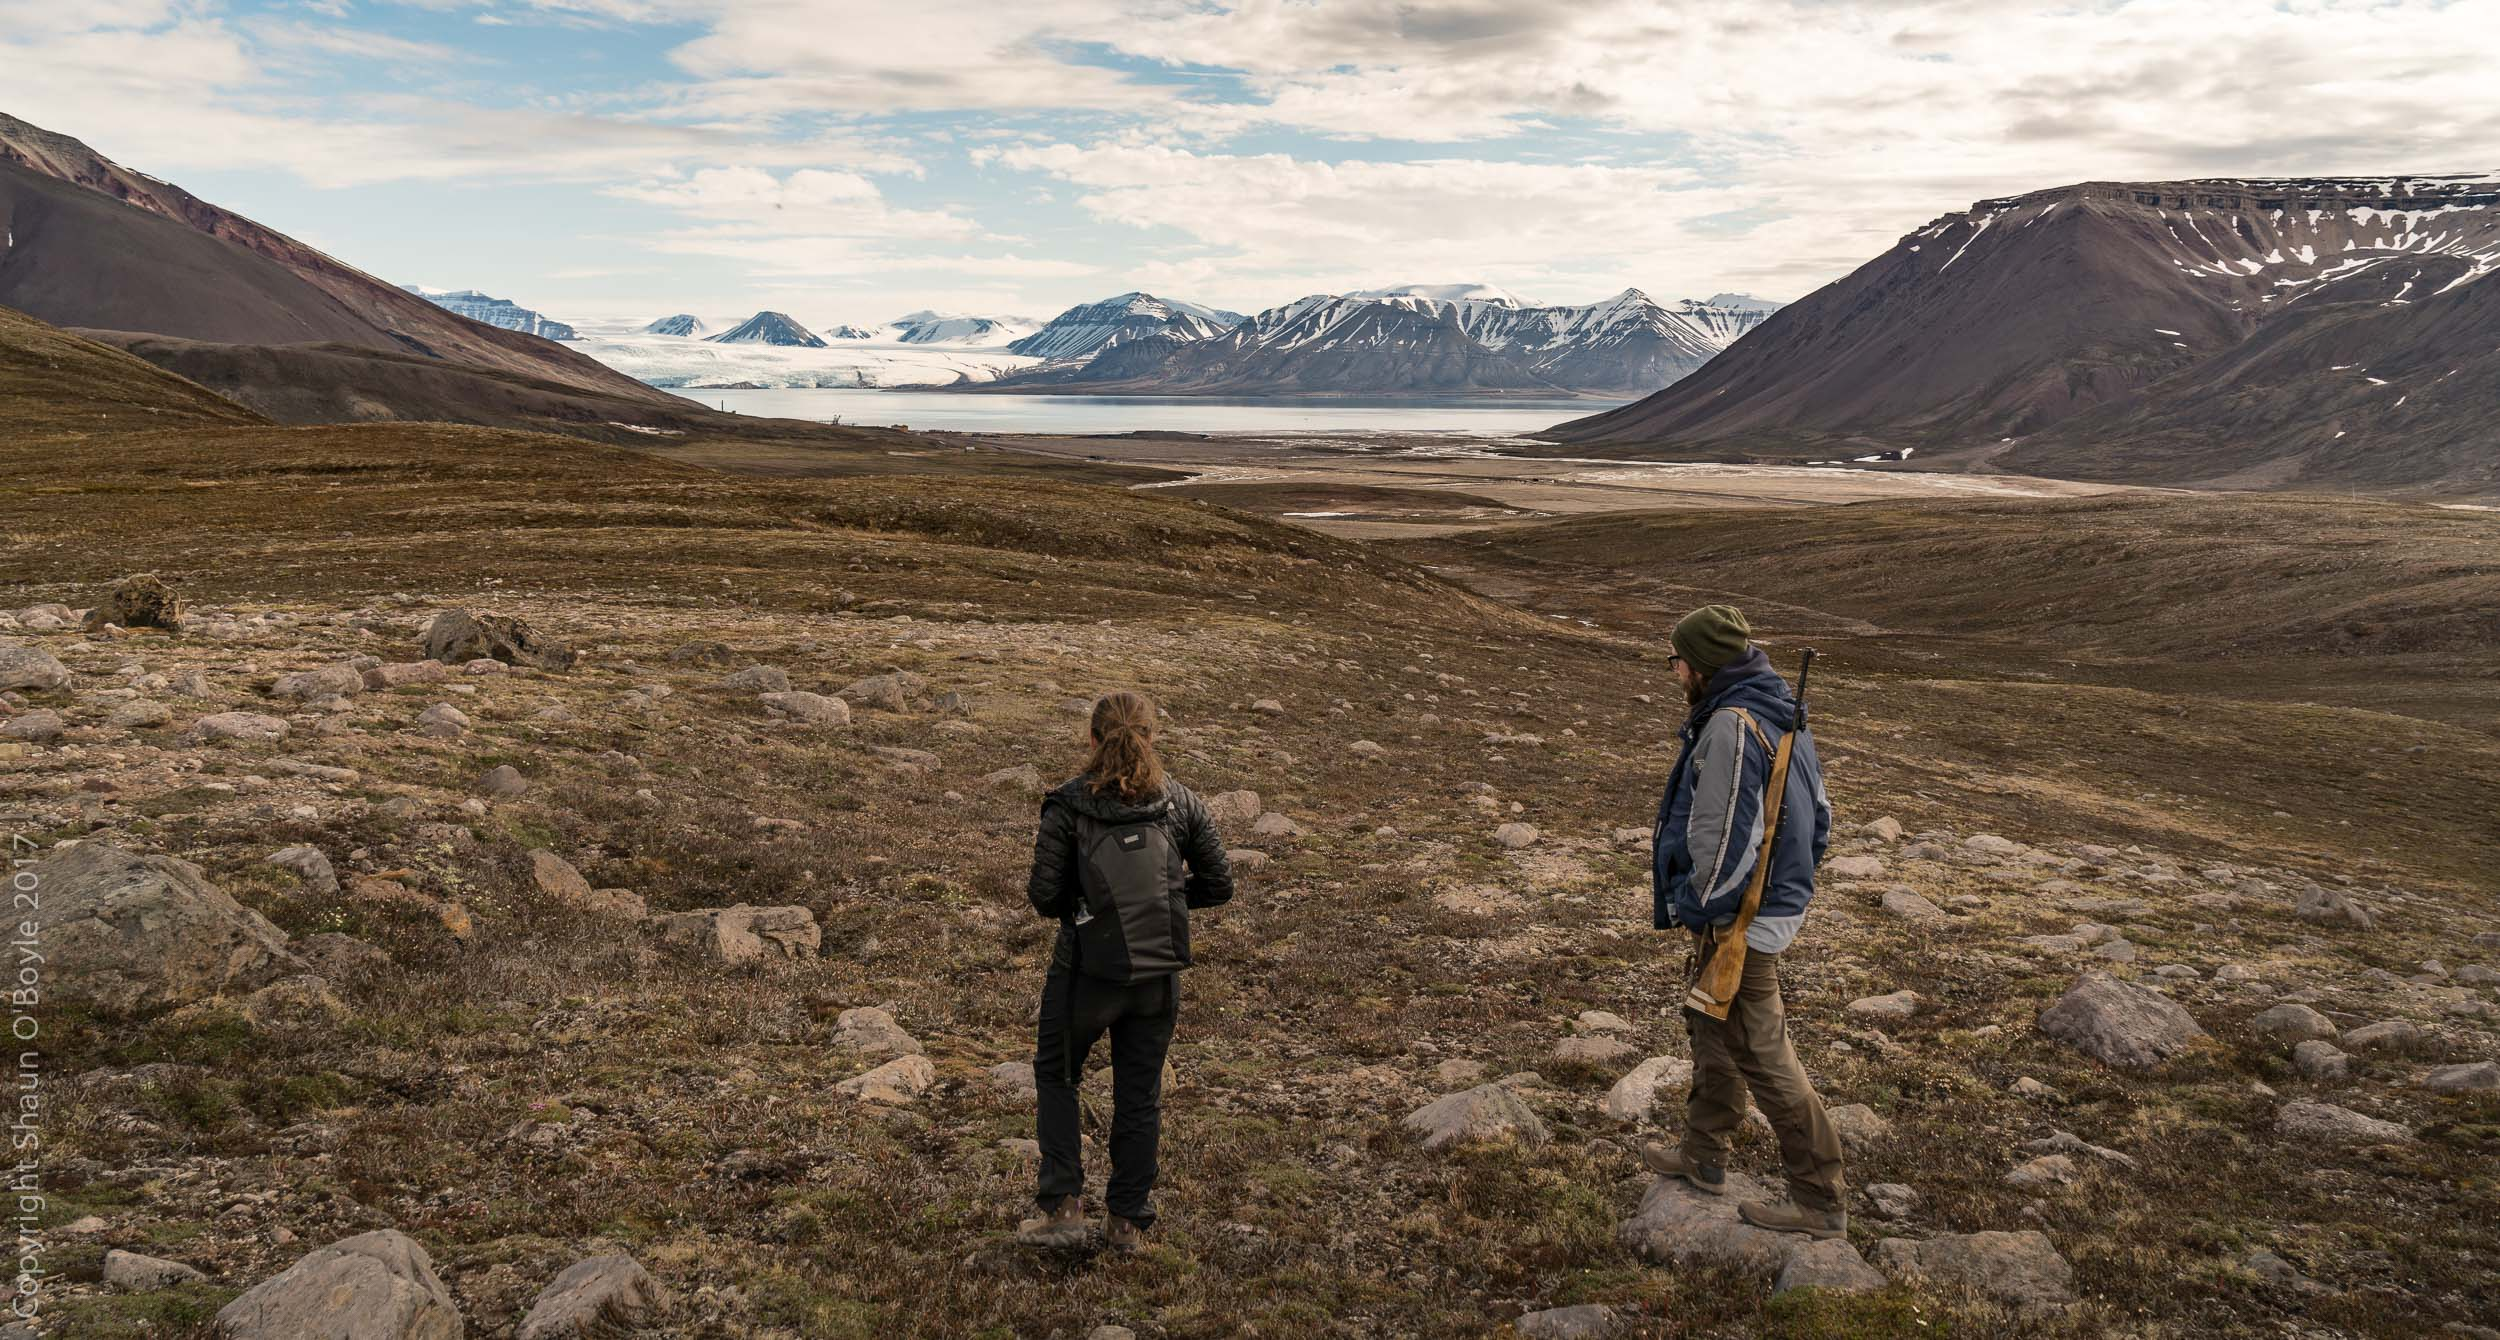 Trekking in the valley above Pyramiden with a Georgian guide. Pyramiden was an active Soviet coal mining settlement from 1927 until 1998 when it was abandoned.